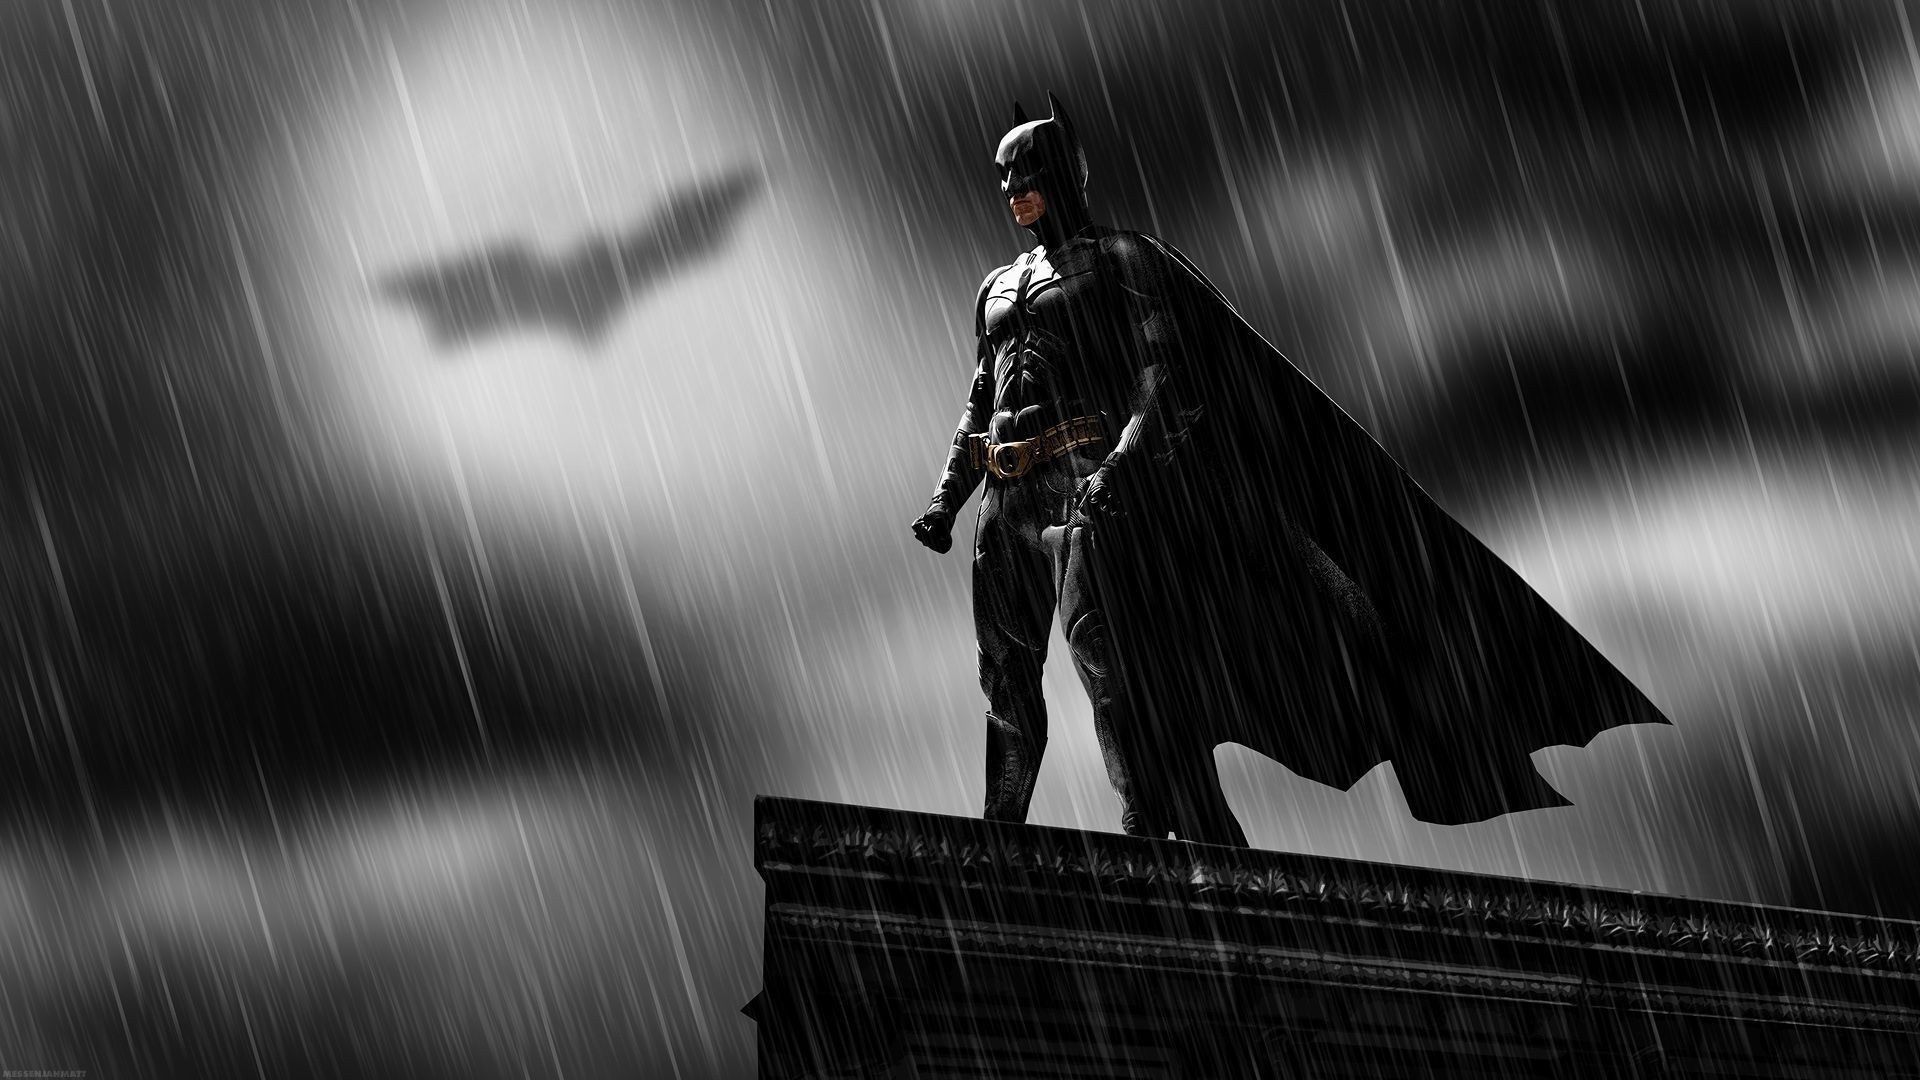 59 Batman Wallpapers ① Download Free Cool High Resolution